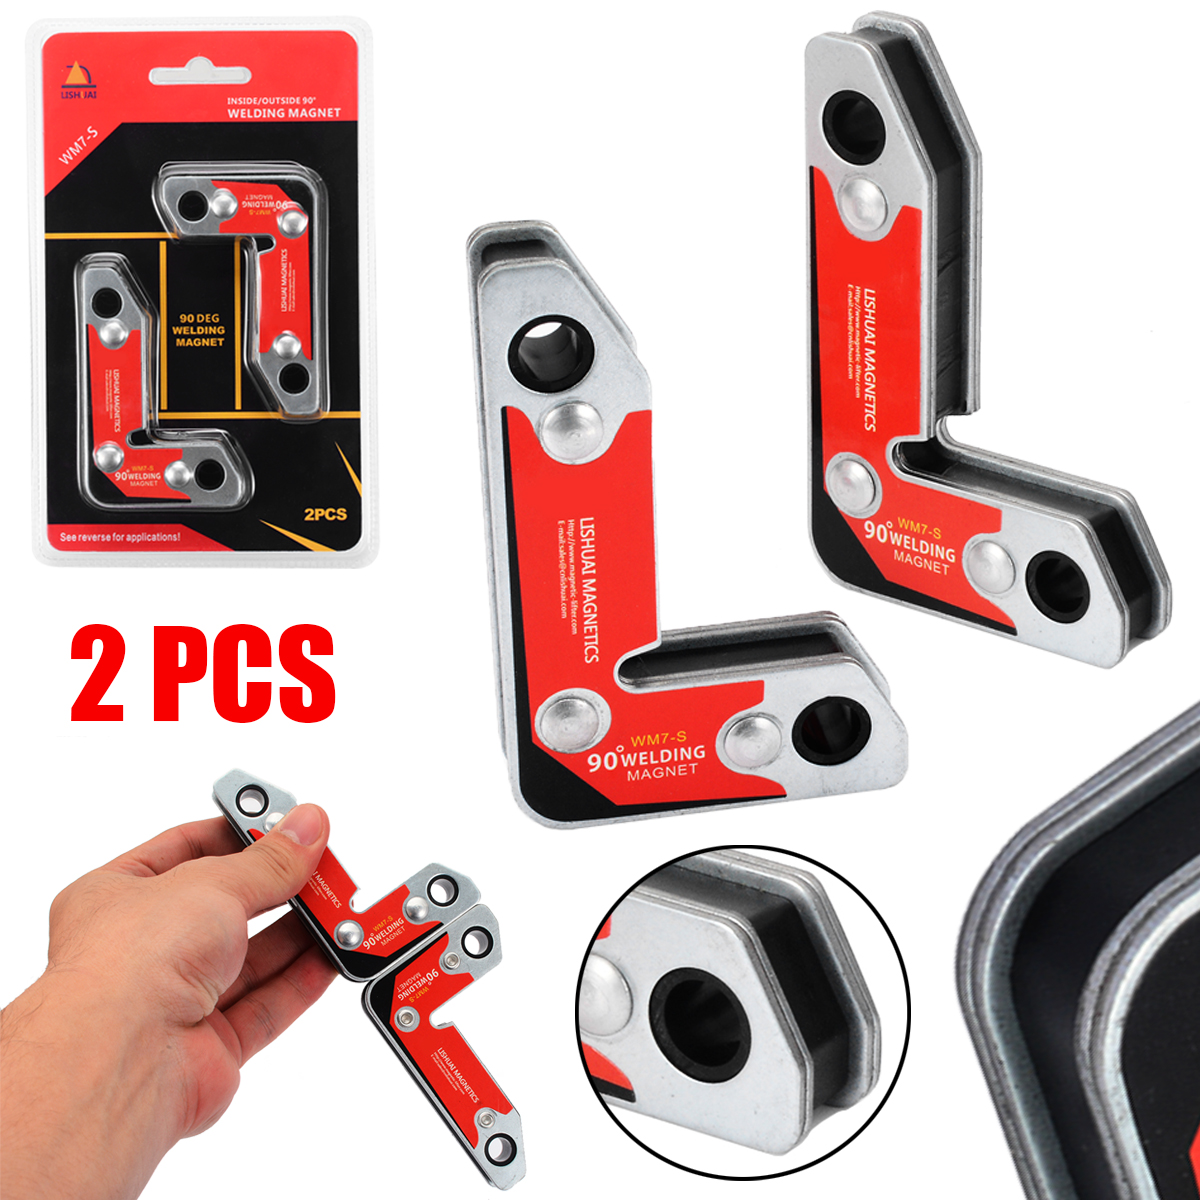 2pcs Inside//Outside Magnetic Holder Welding Clamp Fixer Welder Tool 30//60//90 Degree Welding Magnet